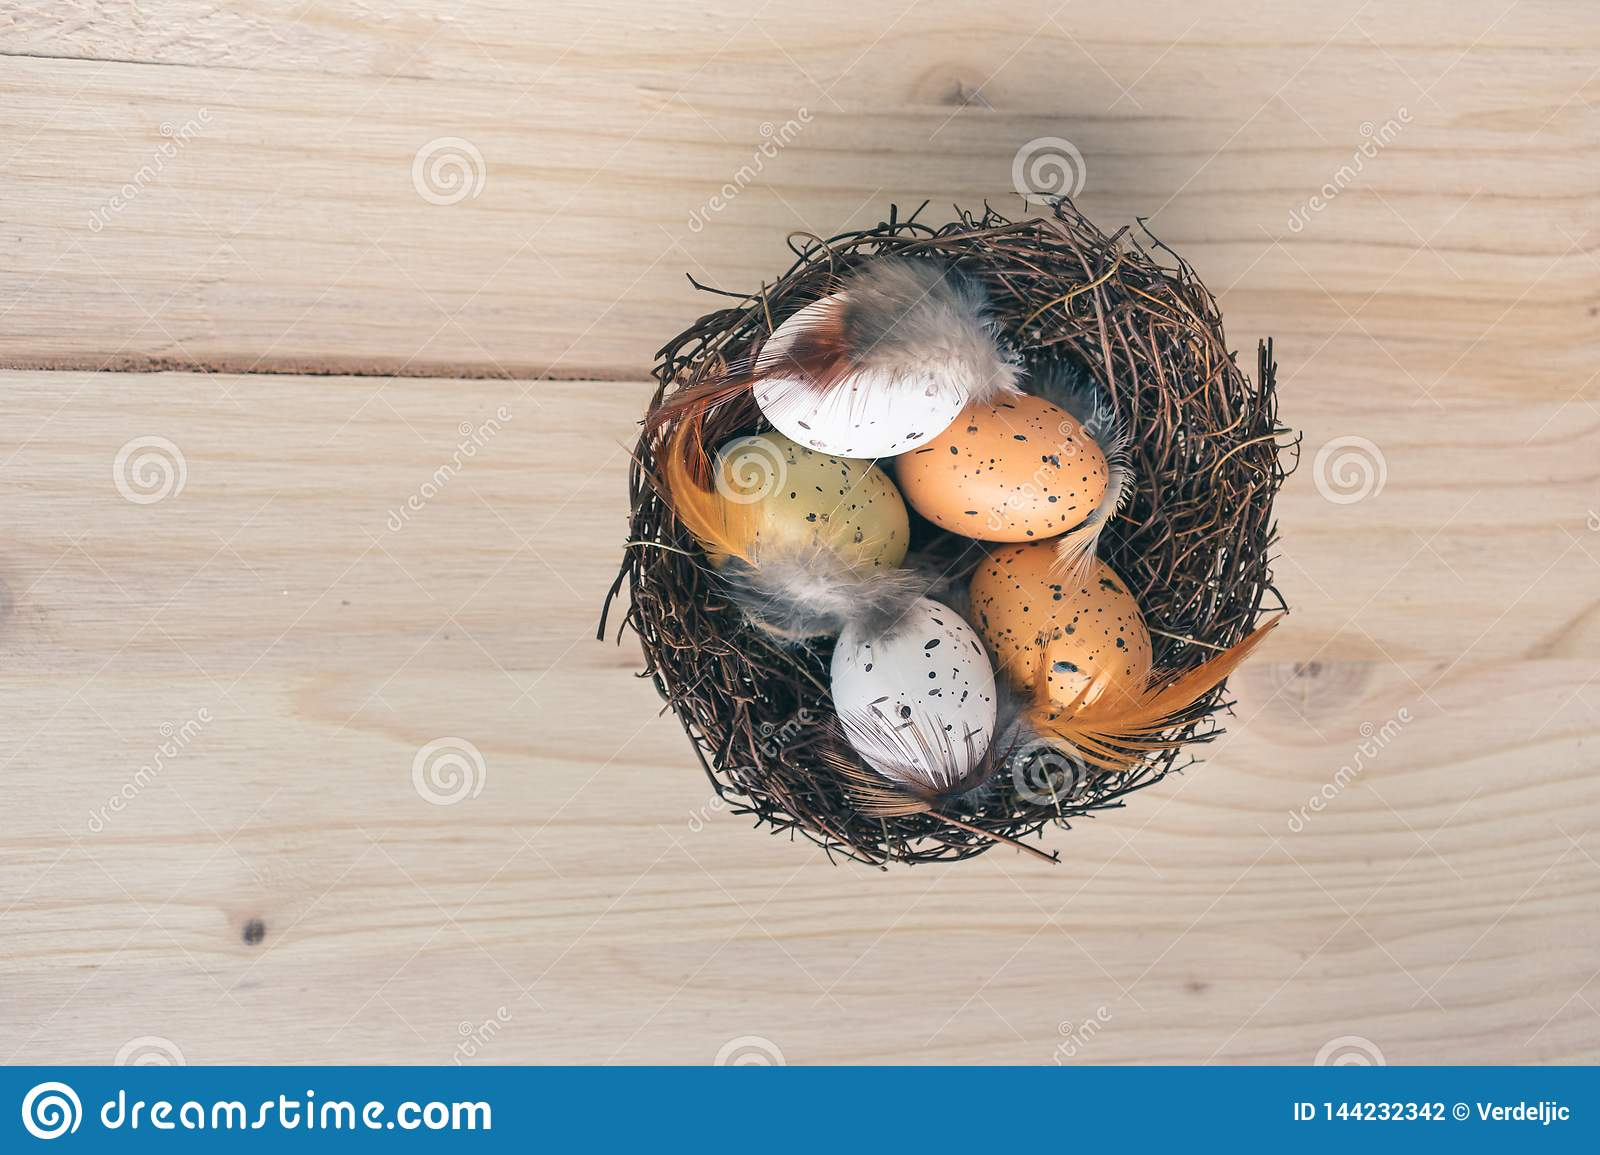 Top view of an Easter nest with orange, brown and white quail eggs decorations with feathers on wooden background